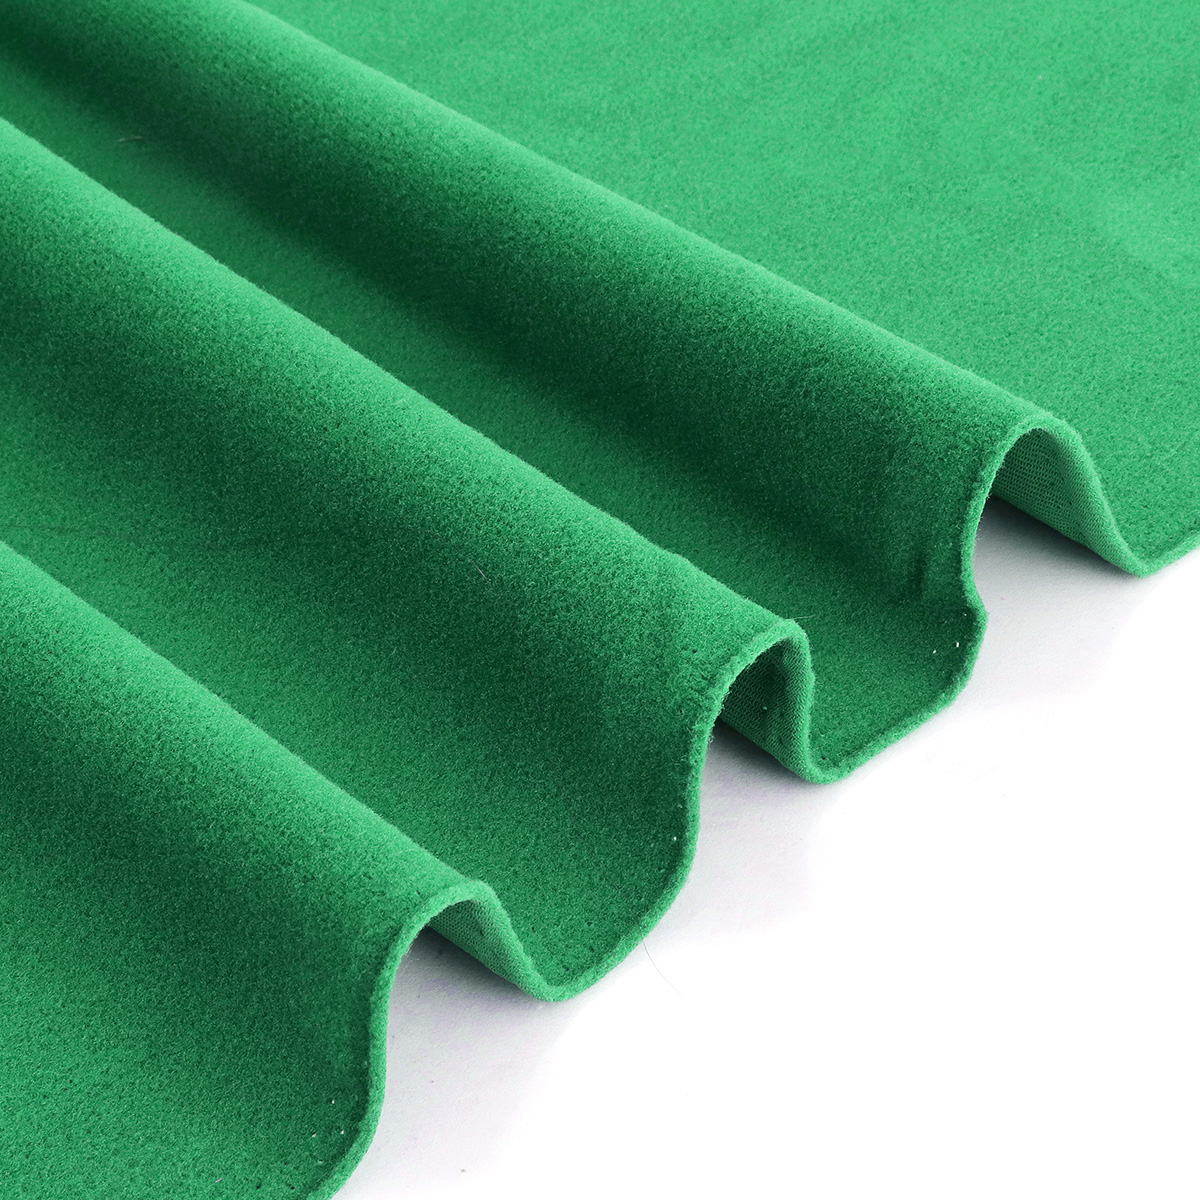 7ft/8ft Professional Worsted Billiard Pool Table Cloth Felt Universal Snooker Accessories Billiard Table Cloth for Indoor Bars Clubs Games Hotels Table Felt Cloth 2.5x1.42m